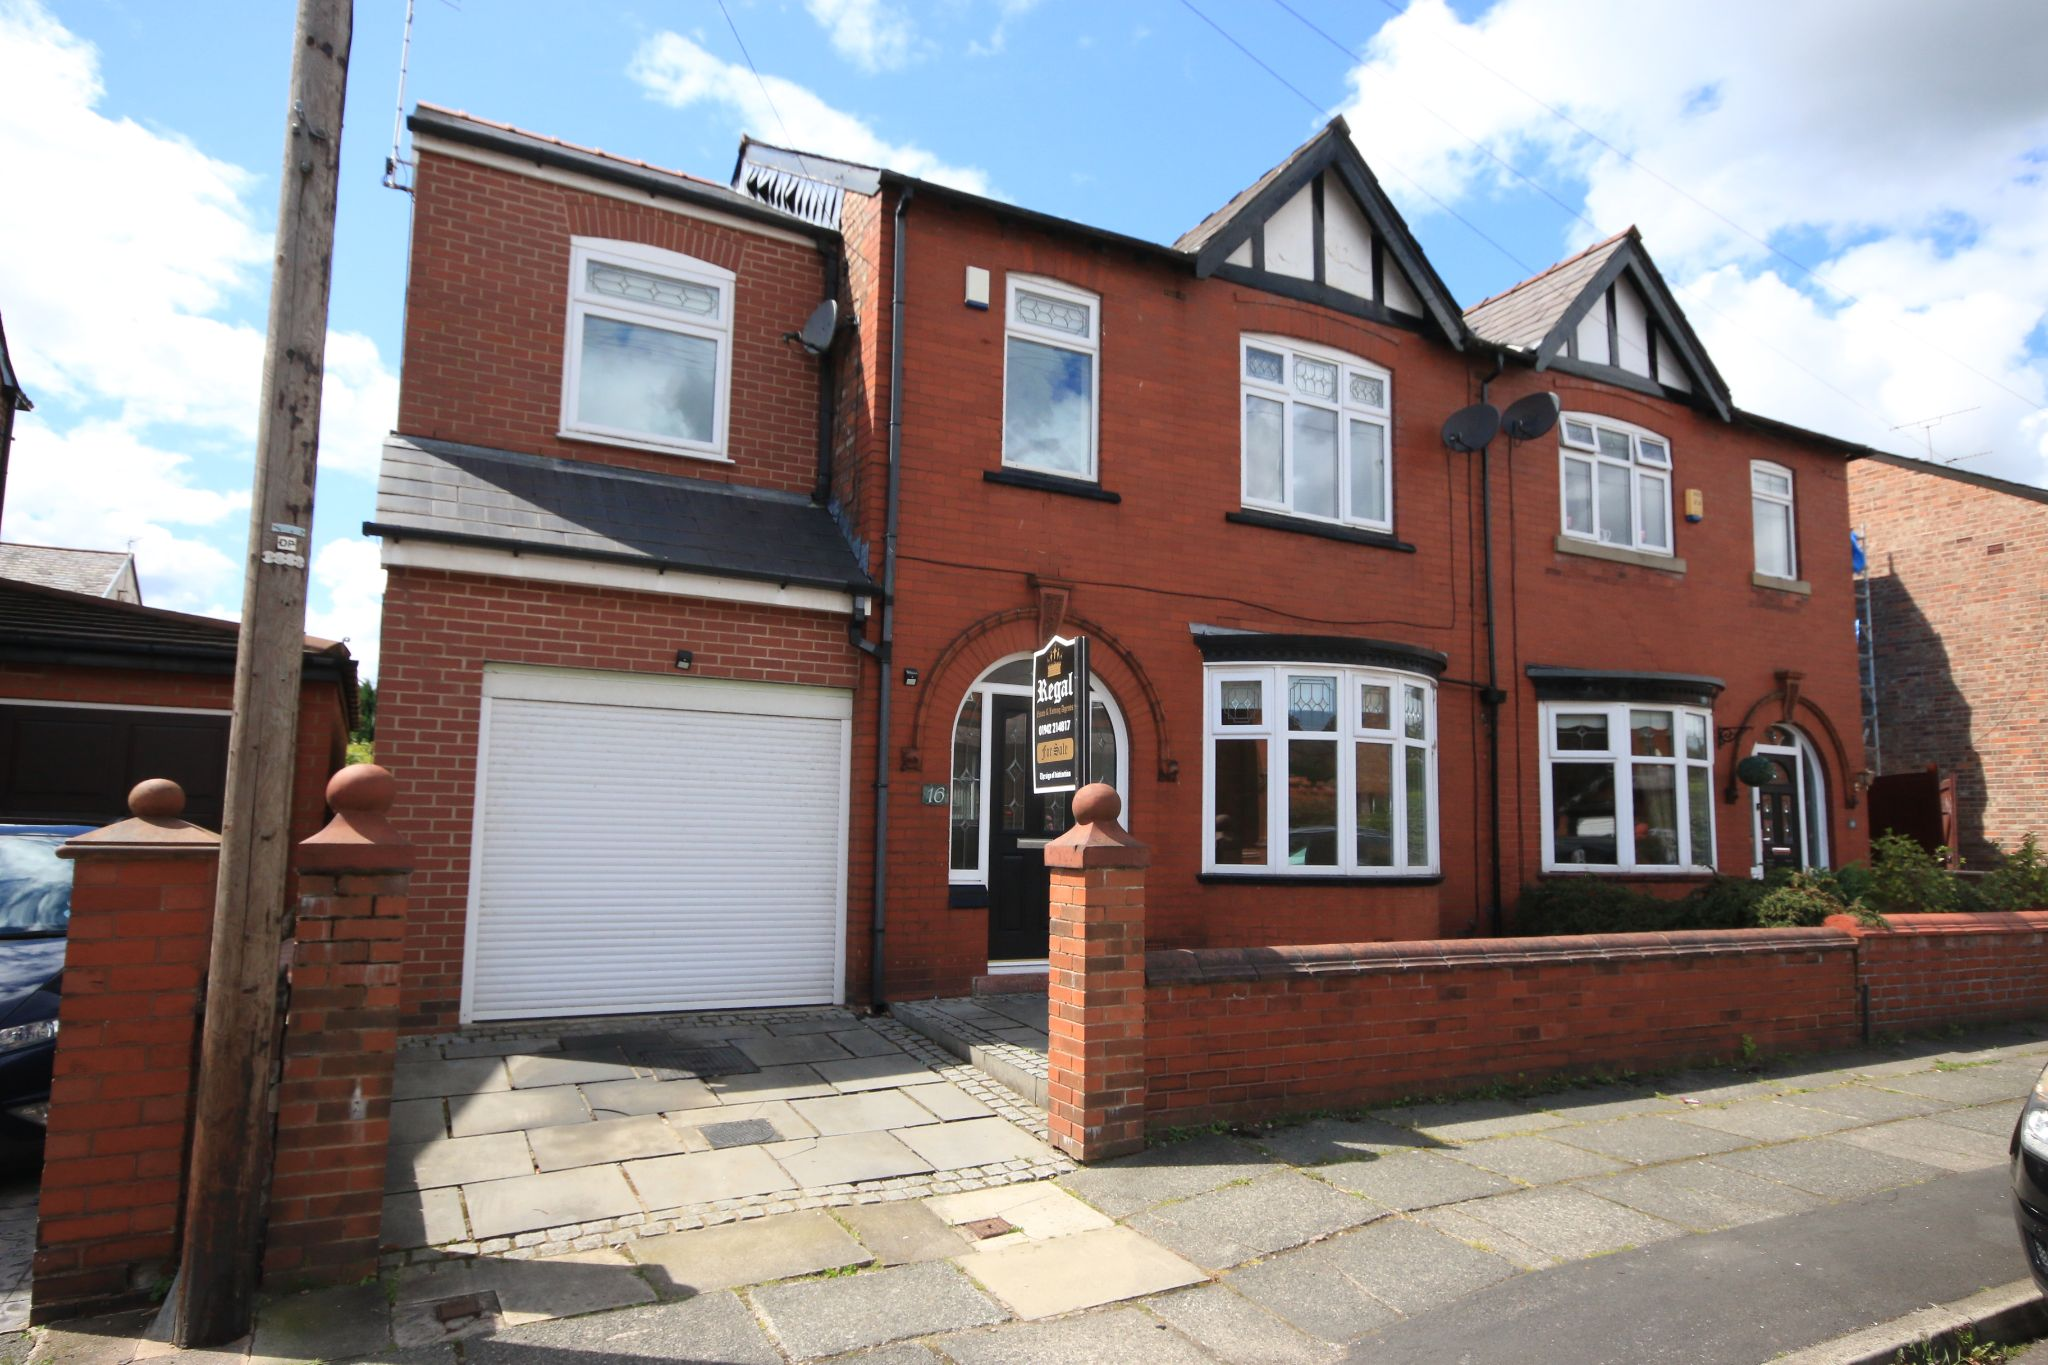 5 Bedroom Semi-detached House For Sale - Photograph 1